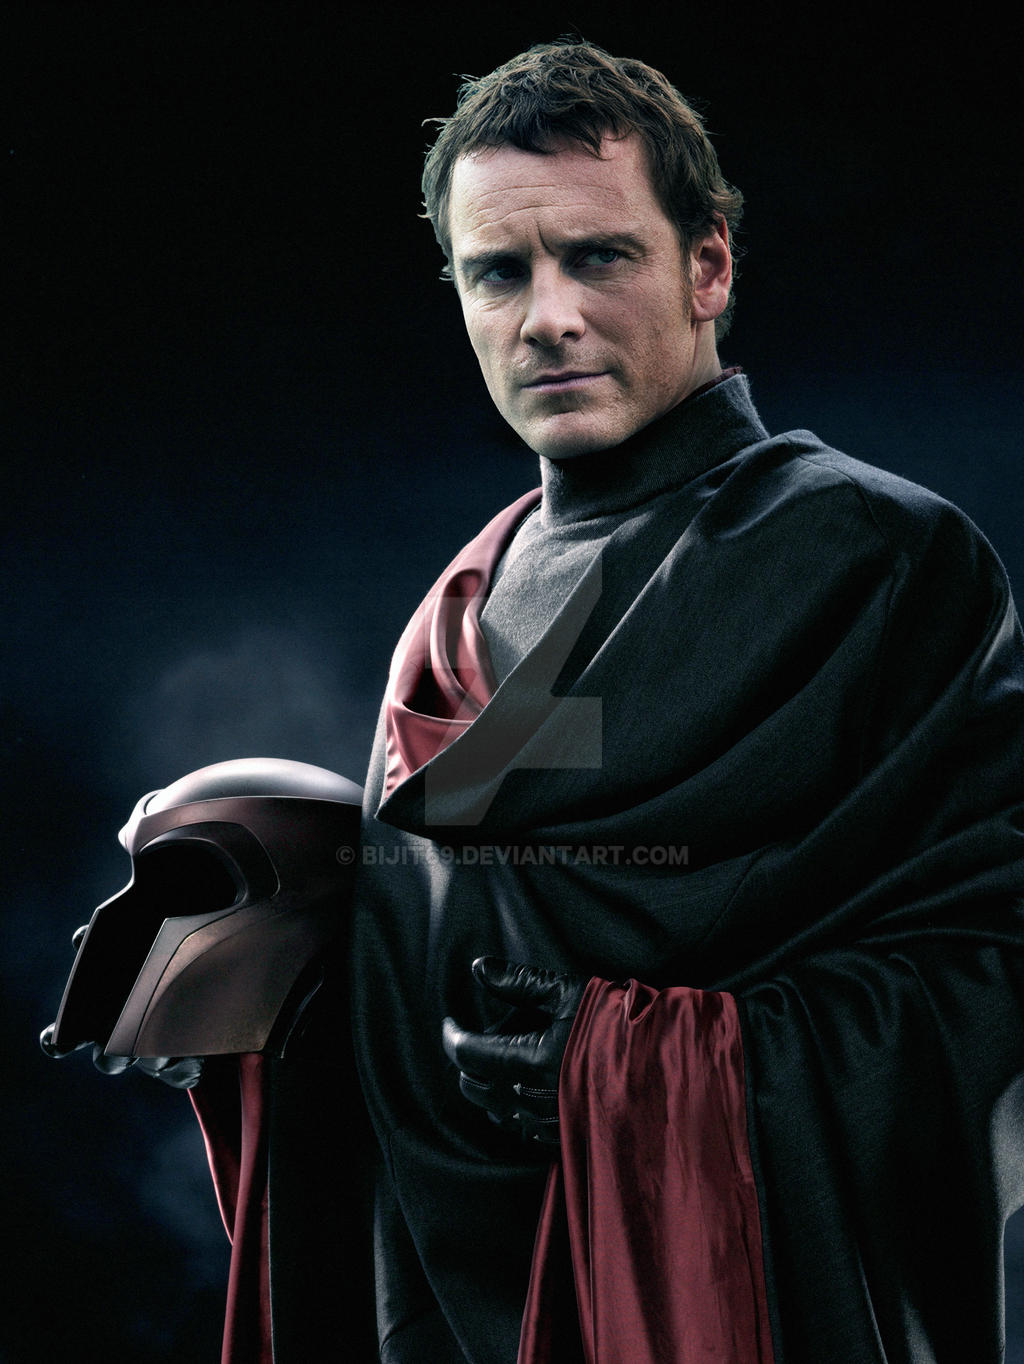 Magneto - Michael Fassbender by bijit69 on DeviantArt X Men Days Of Future Past Photos